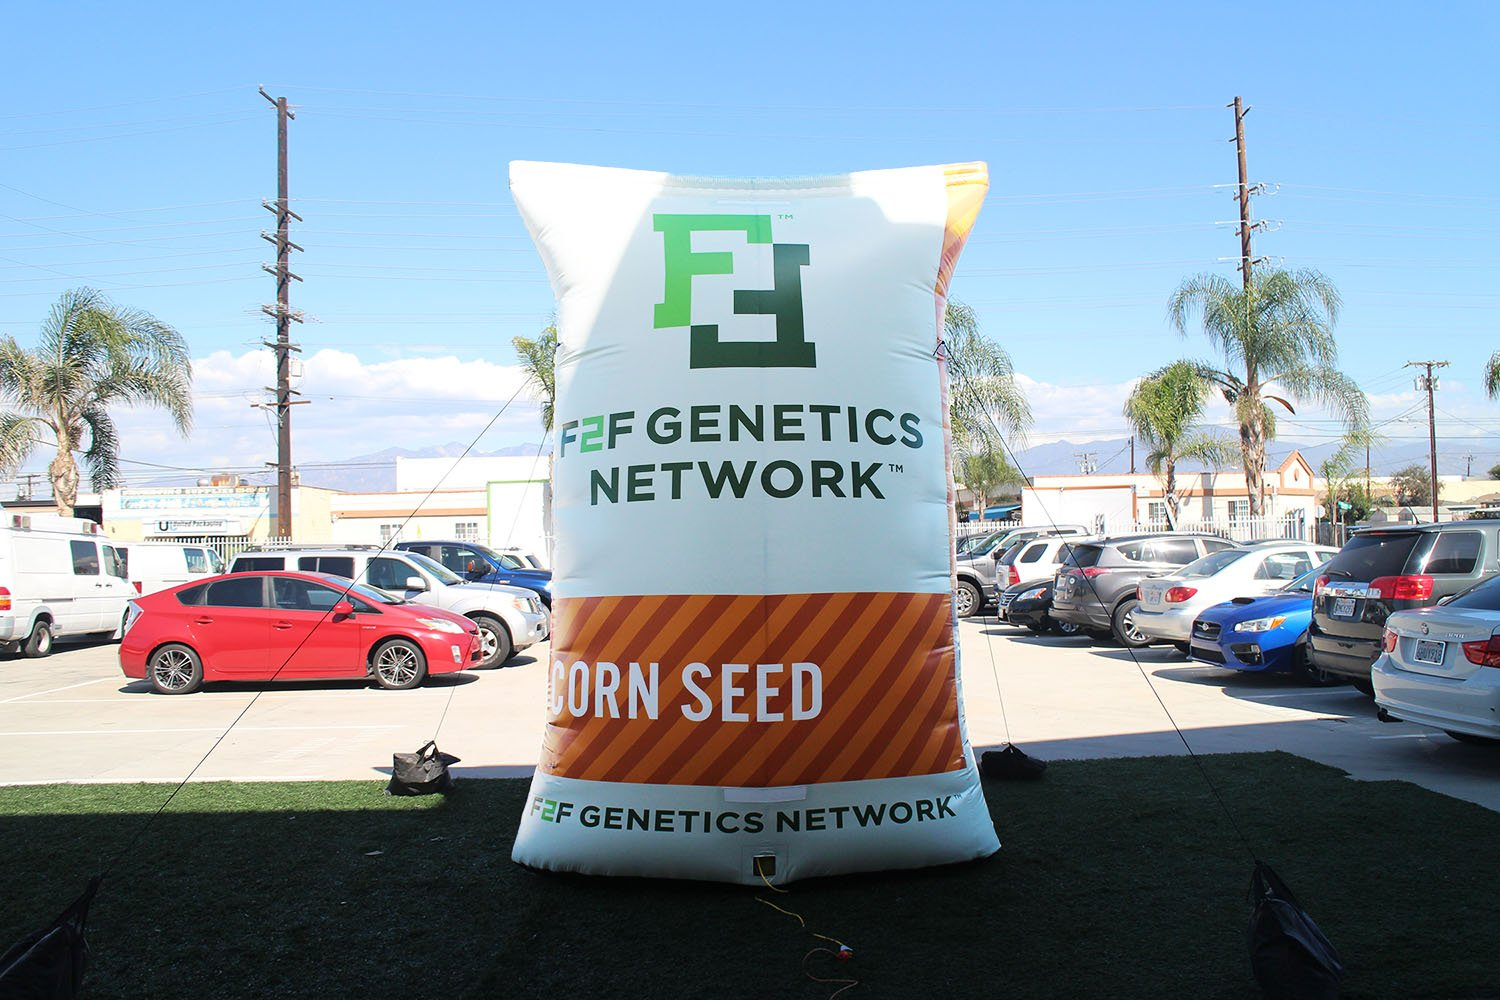 corn-seed-bag-inflatable